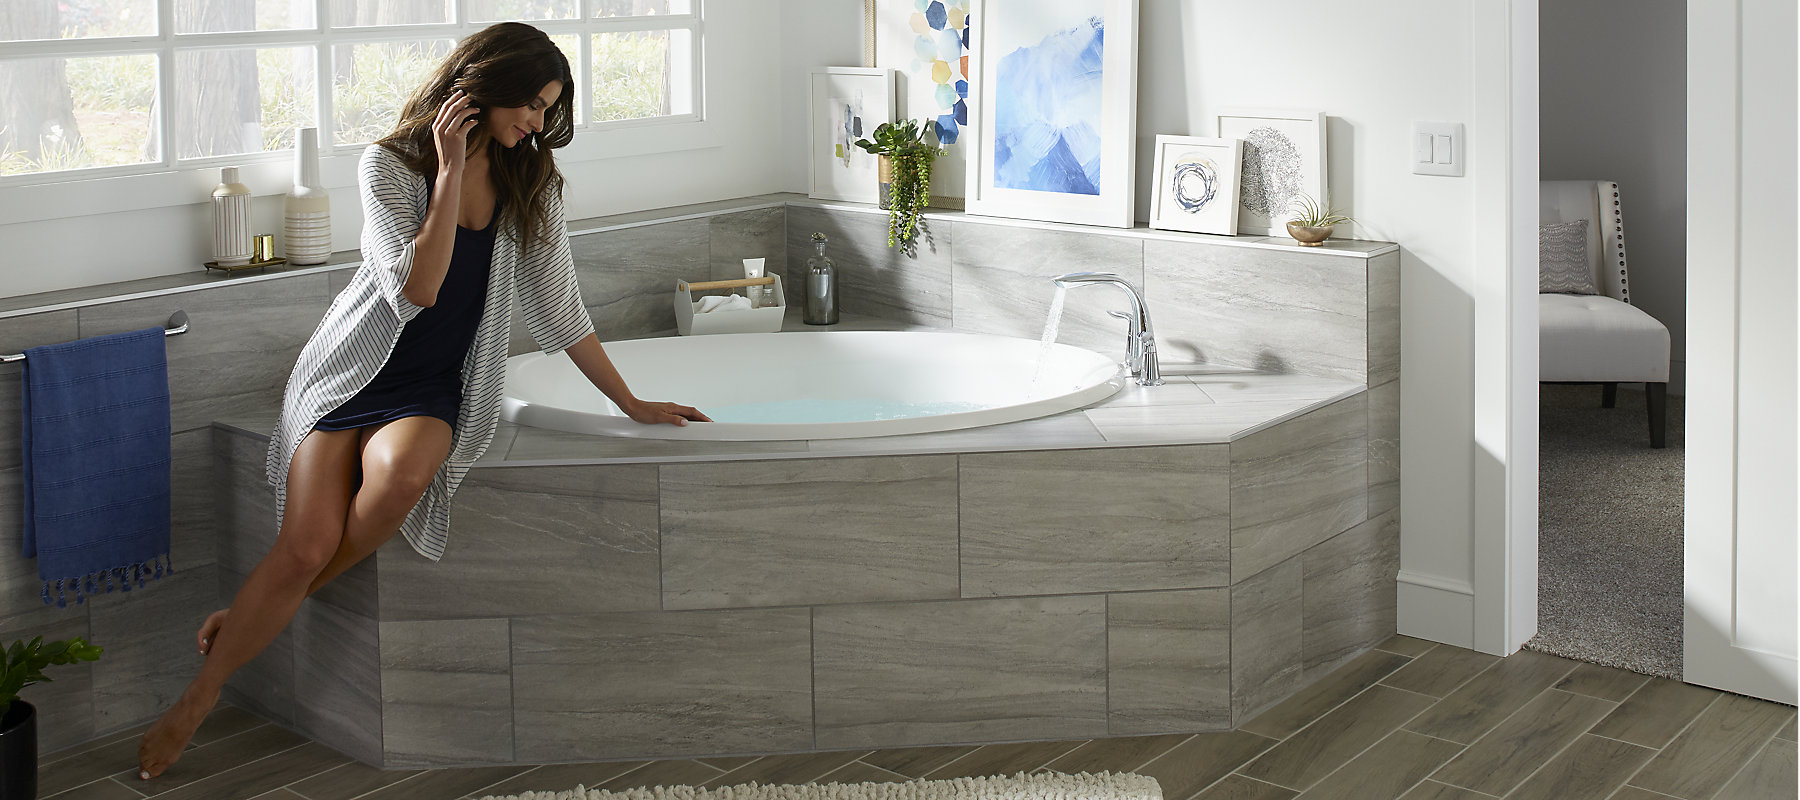 Tips and Trends | Sterling Plumbing